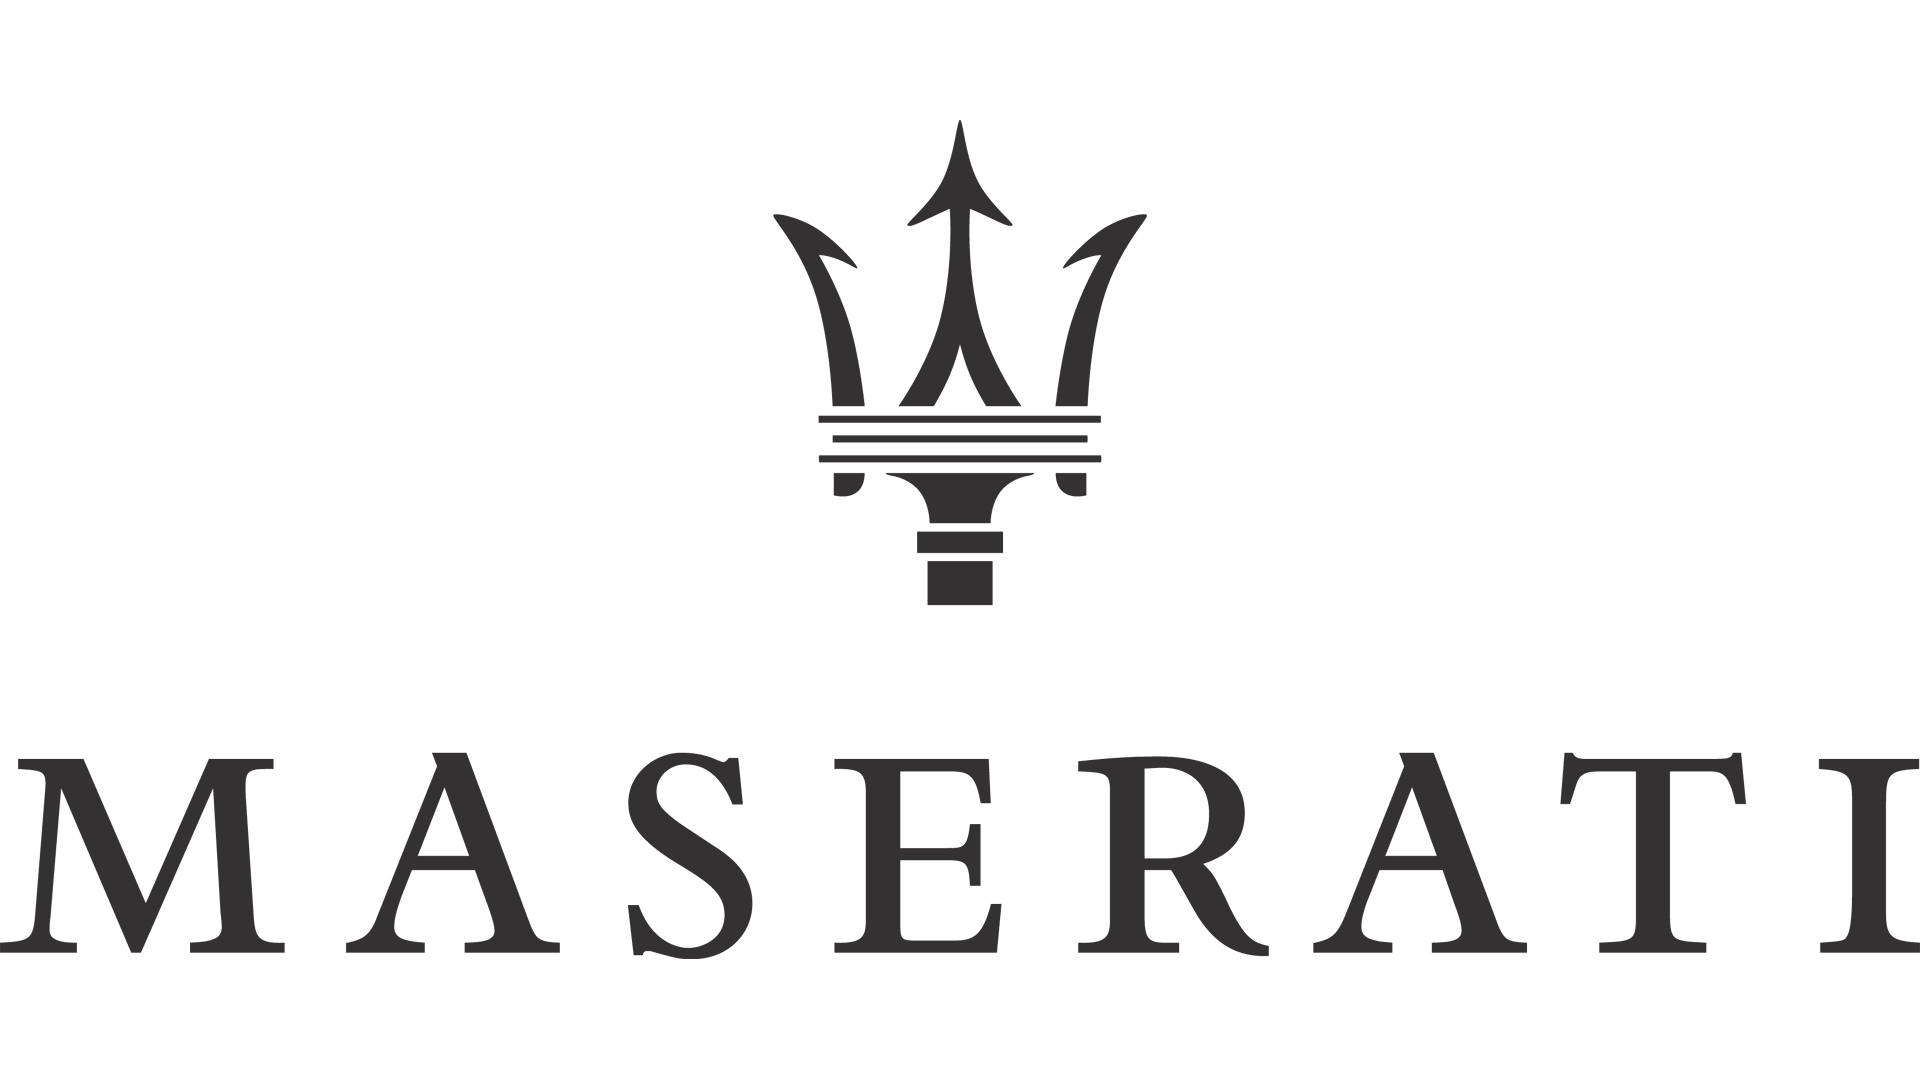 http://rpmautolease.com/wp-content/uploads/2017/08/Maserati-logo-black-1920x1080.png